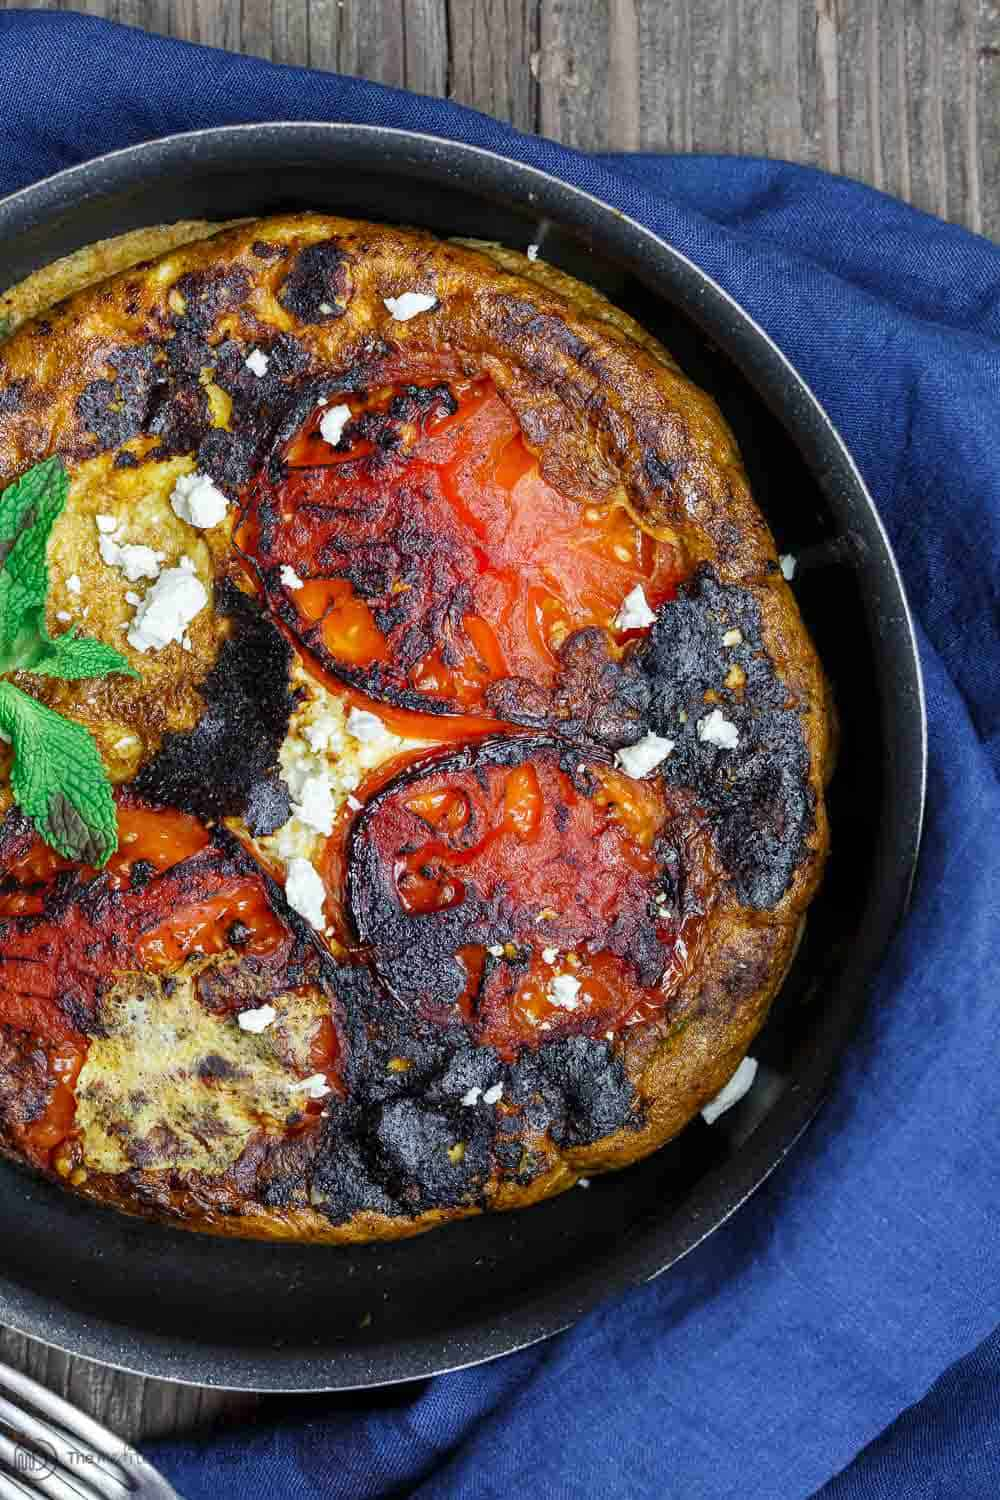 Skillet containing Open-Faced Greek Omelet